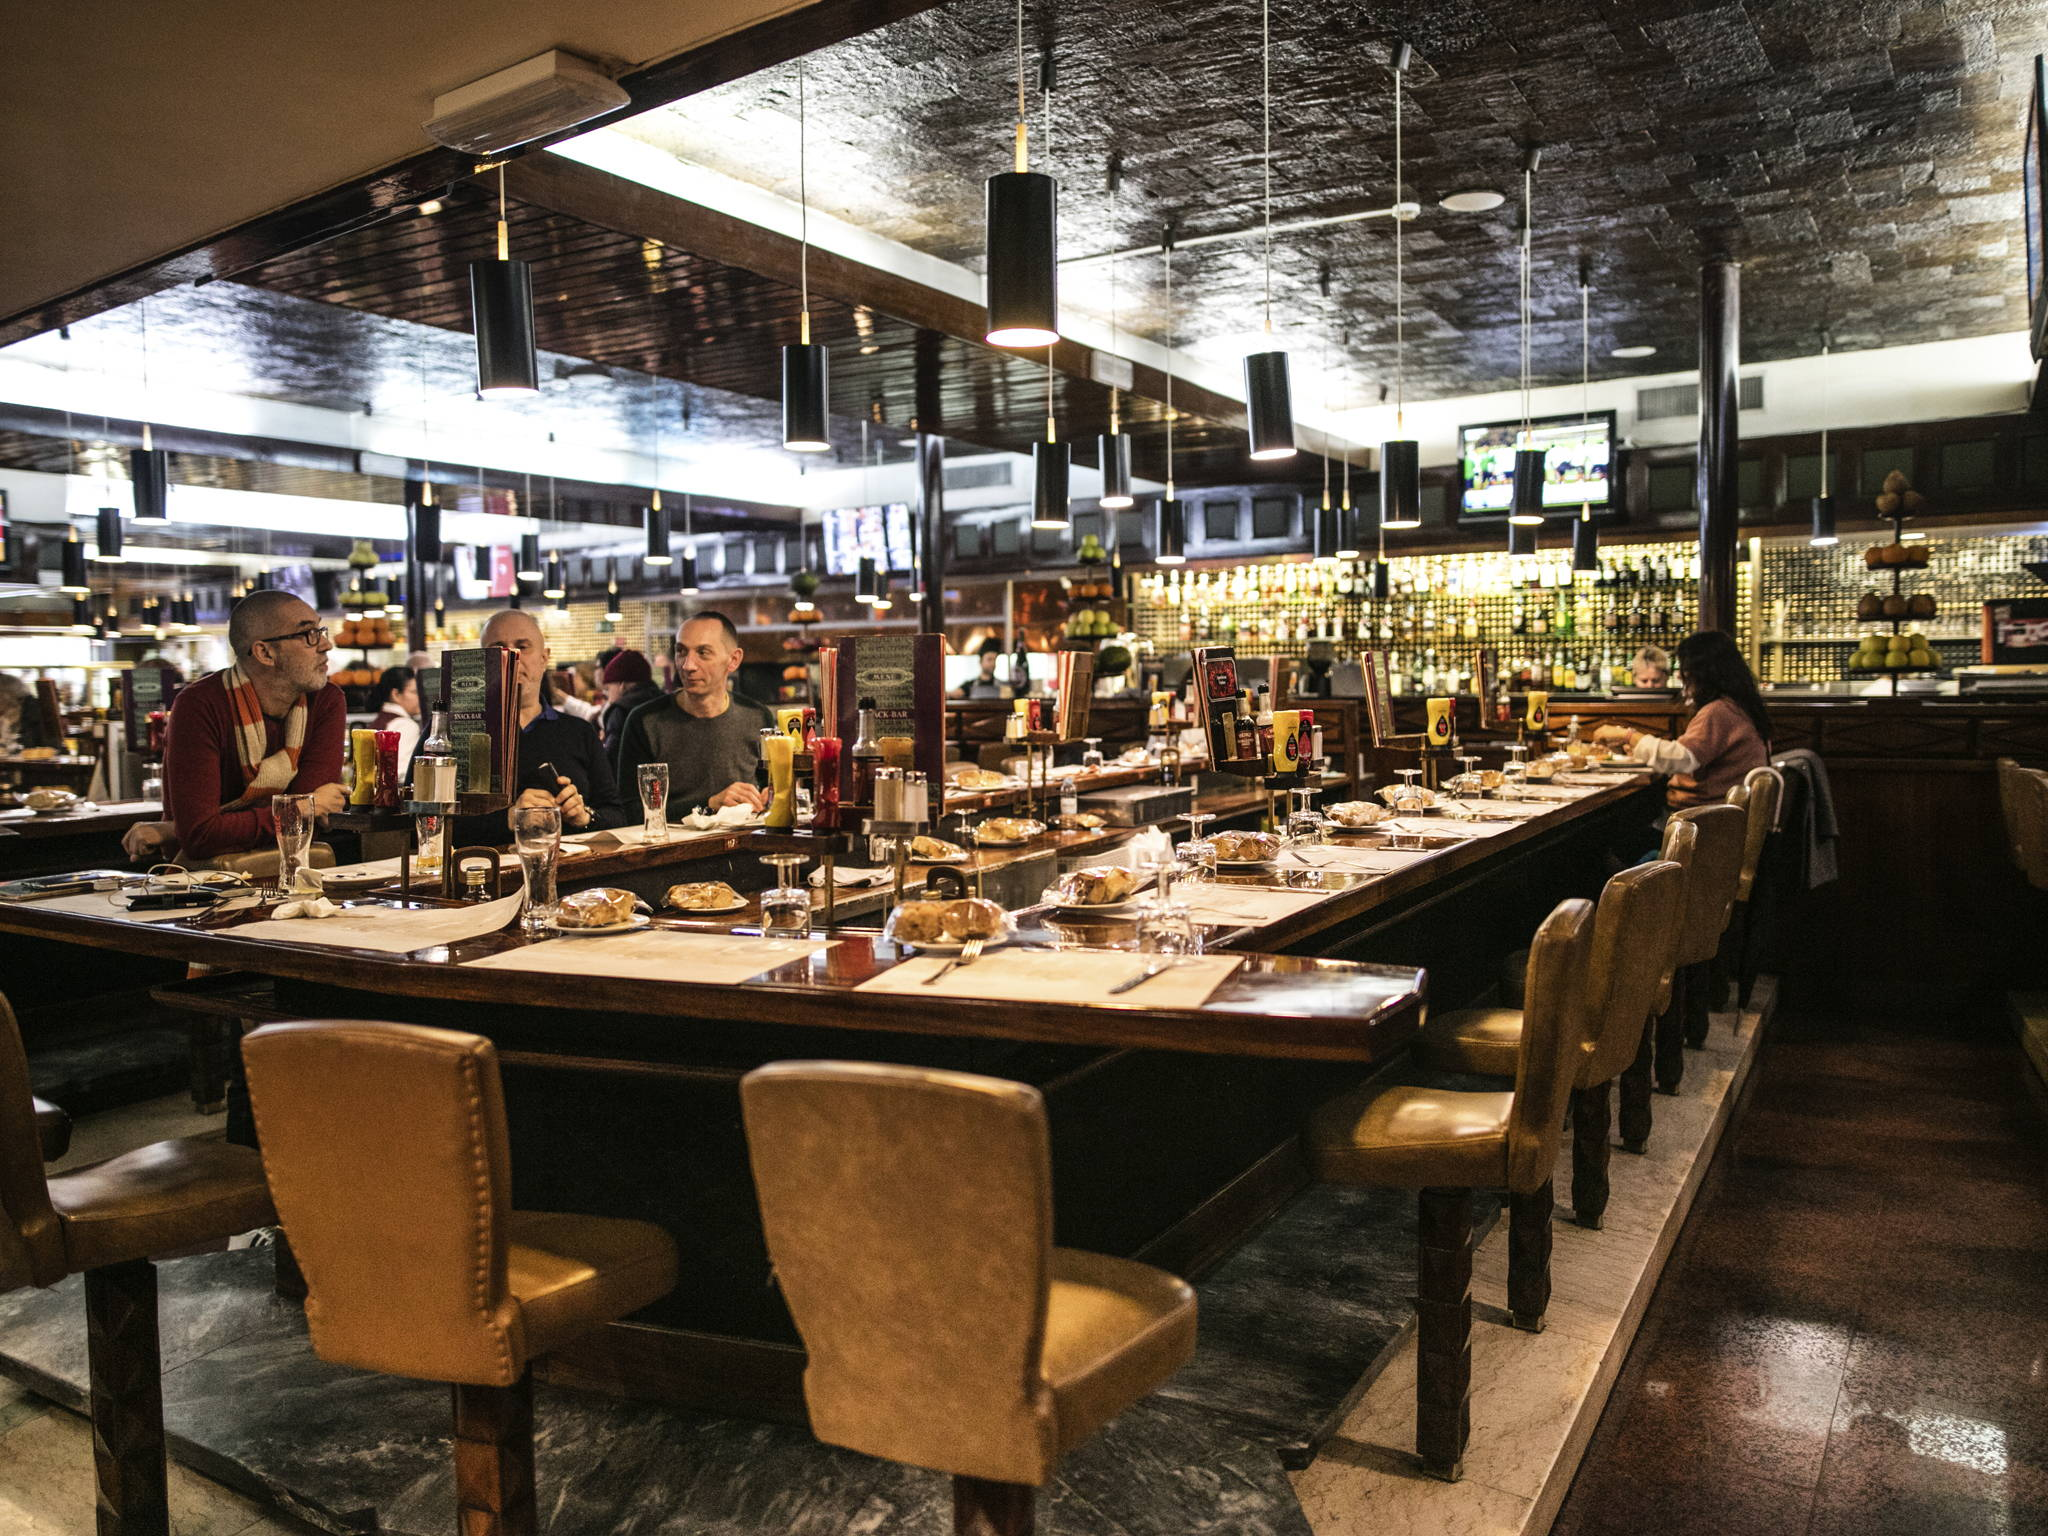 Our team picks Galeto restaurant in Lisbon as one of the places to eat typical Portuguese food.